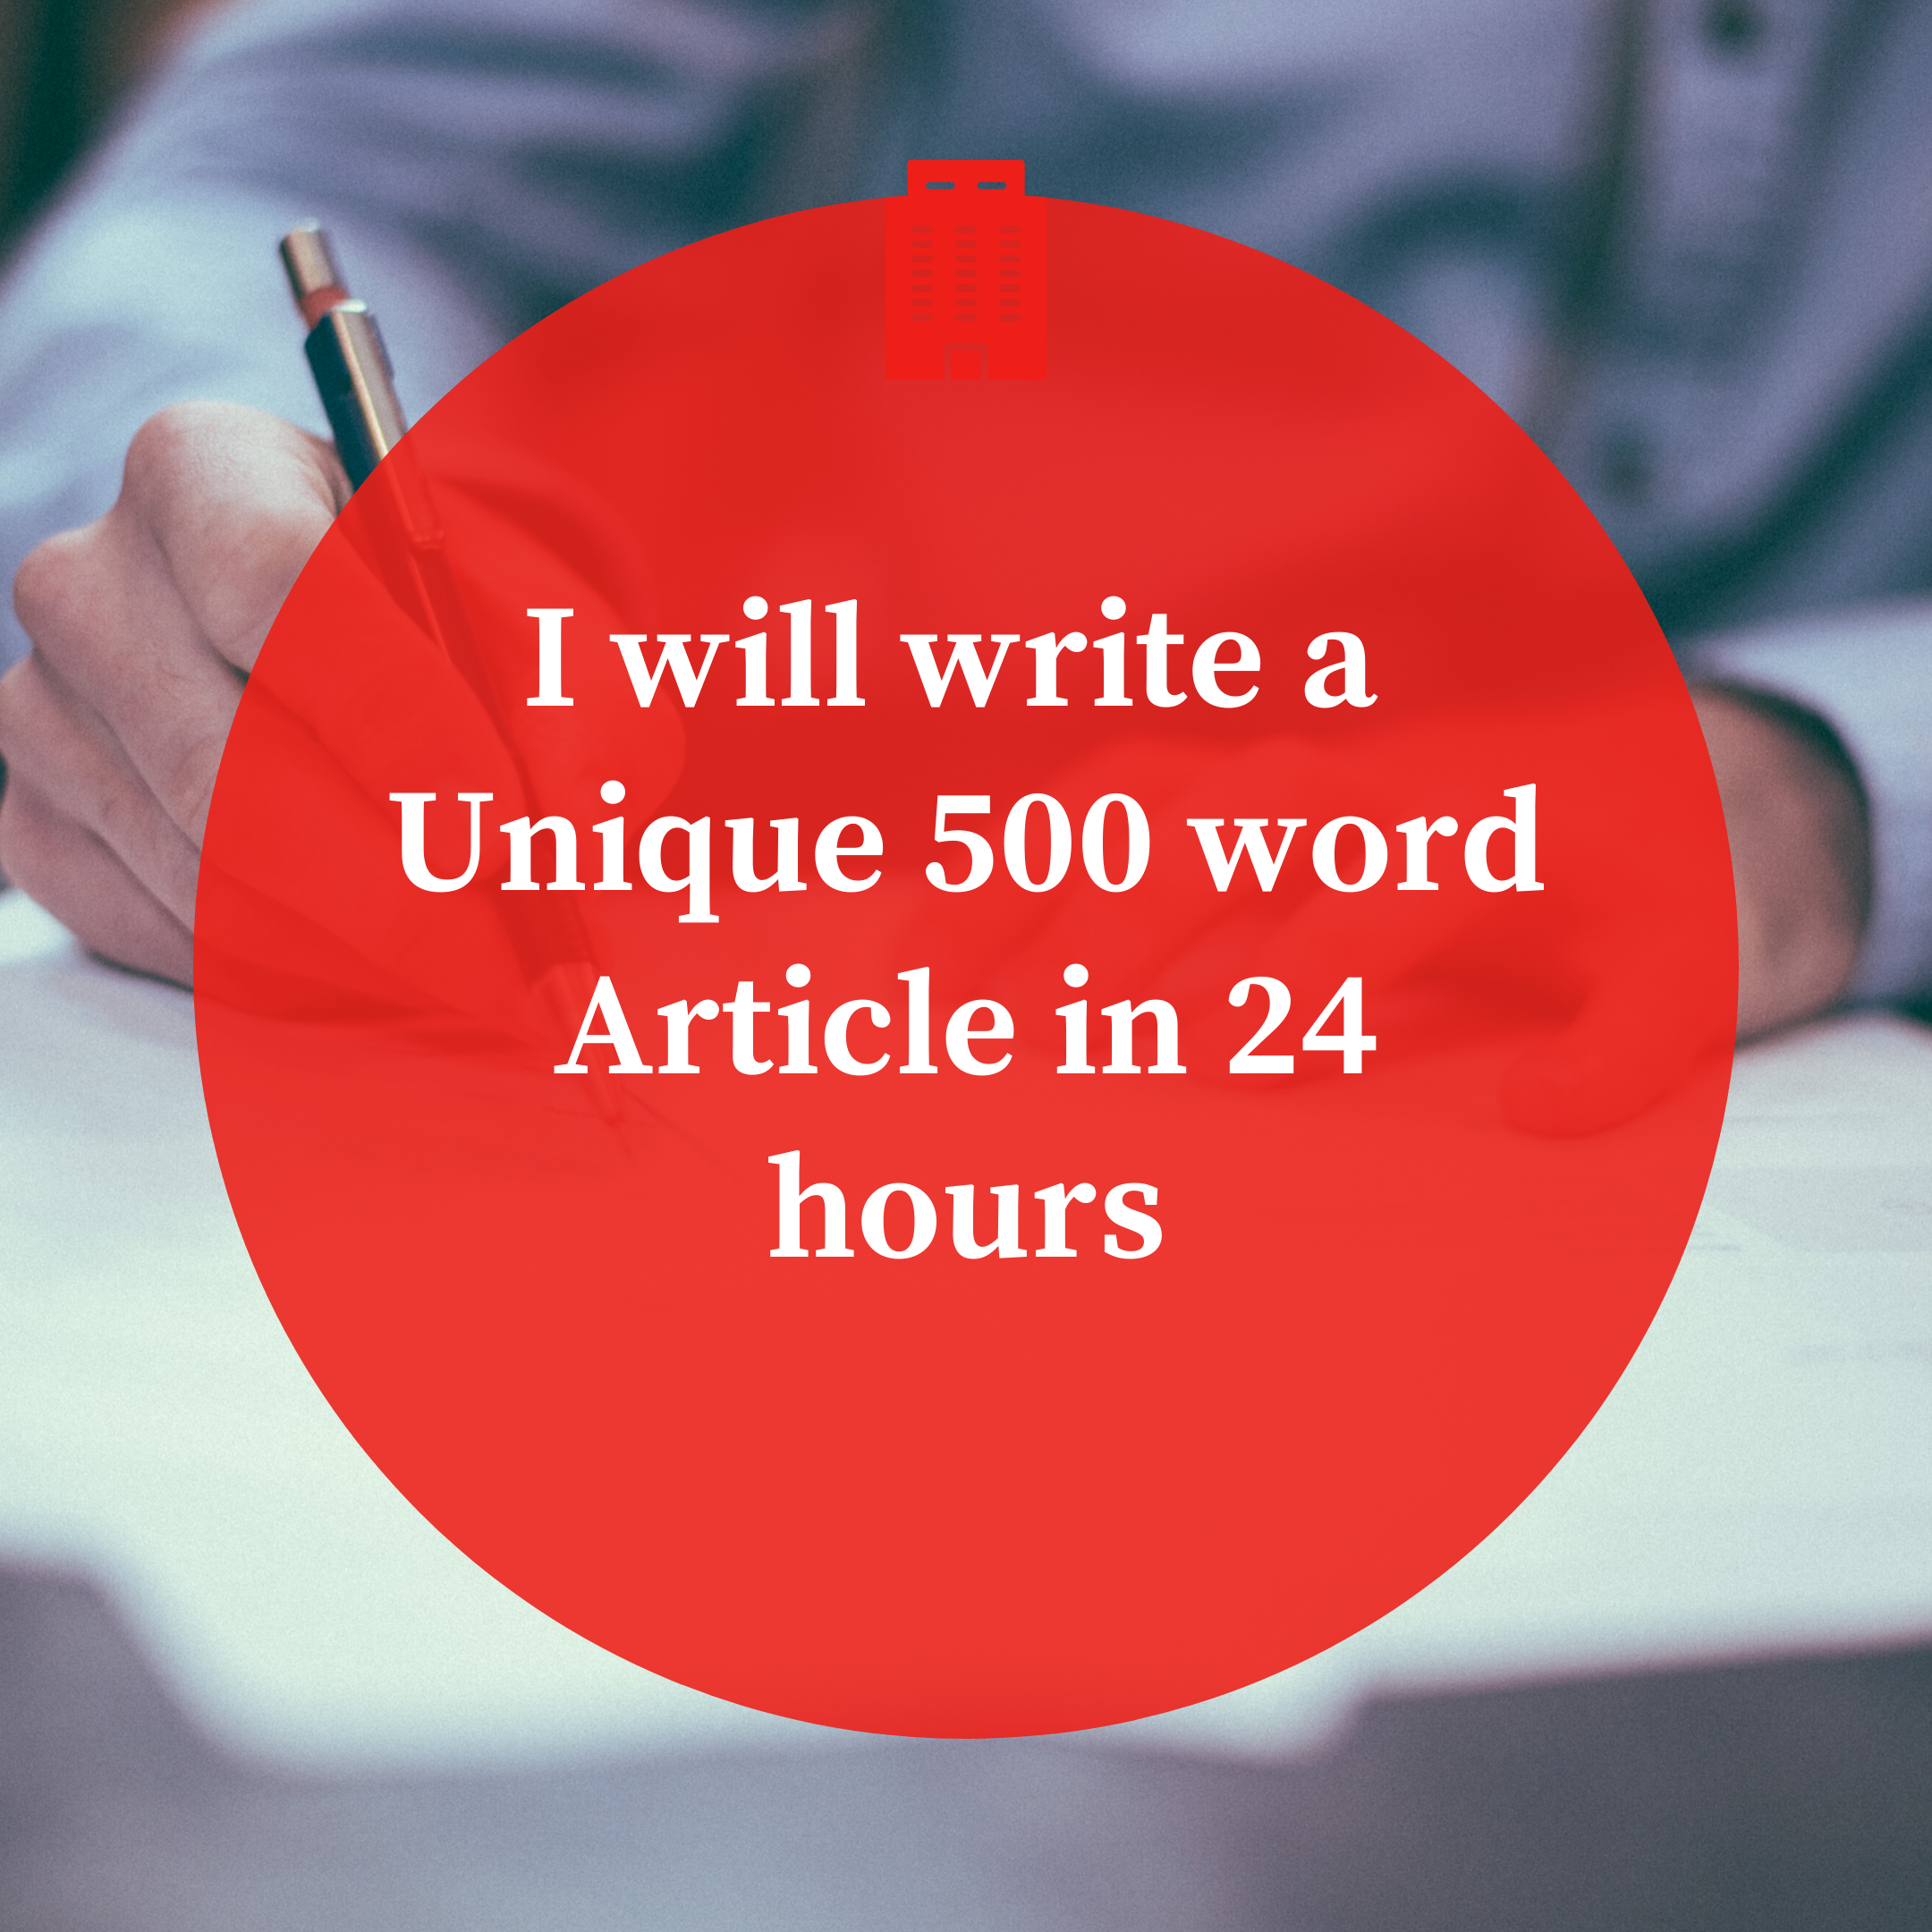 I will write an SEO article of 1000 words in 24 hours